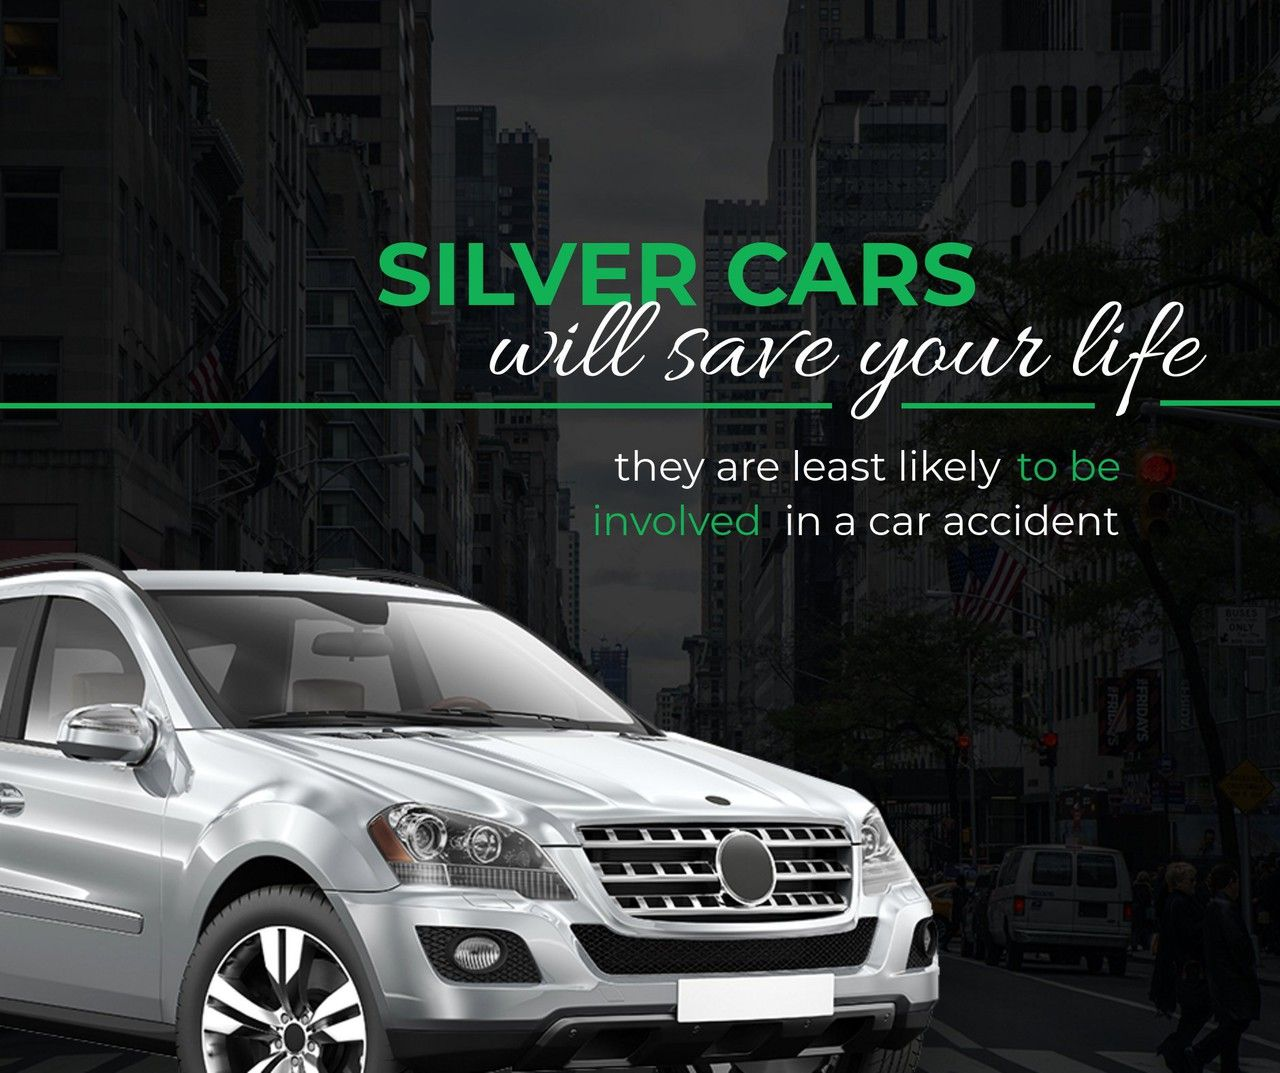 Did You Know That Silver Cars Are Least Likely To Be Involved In A